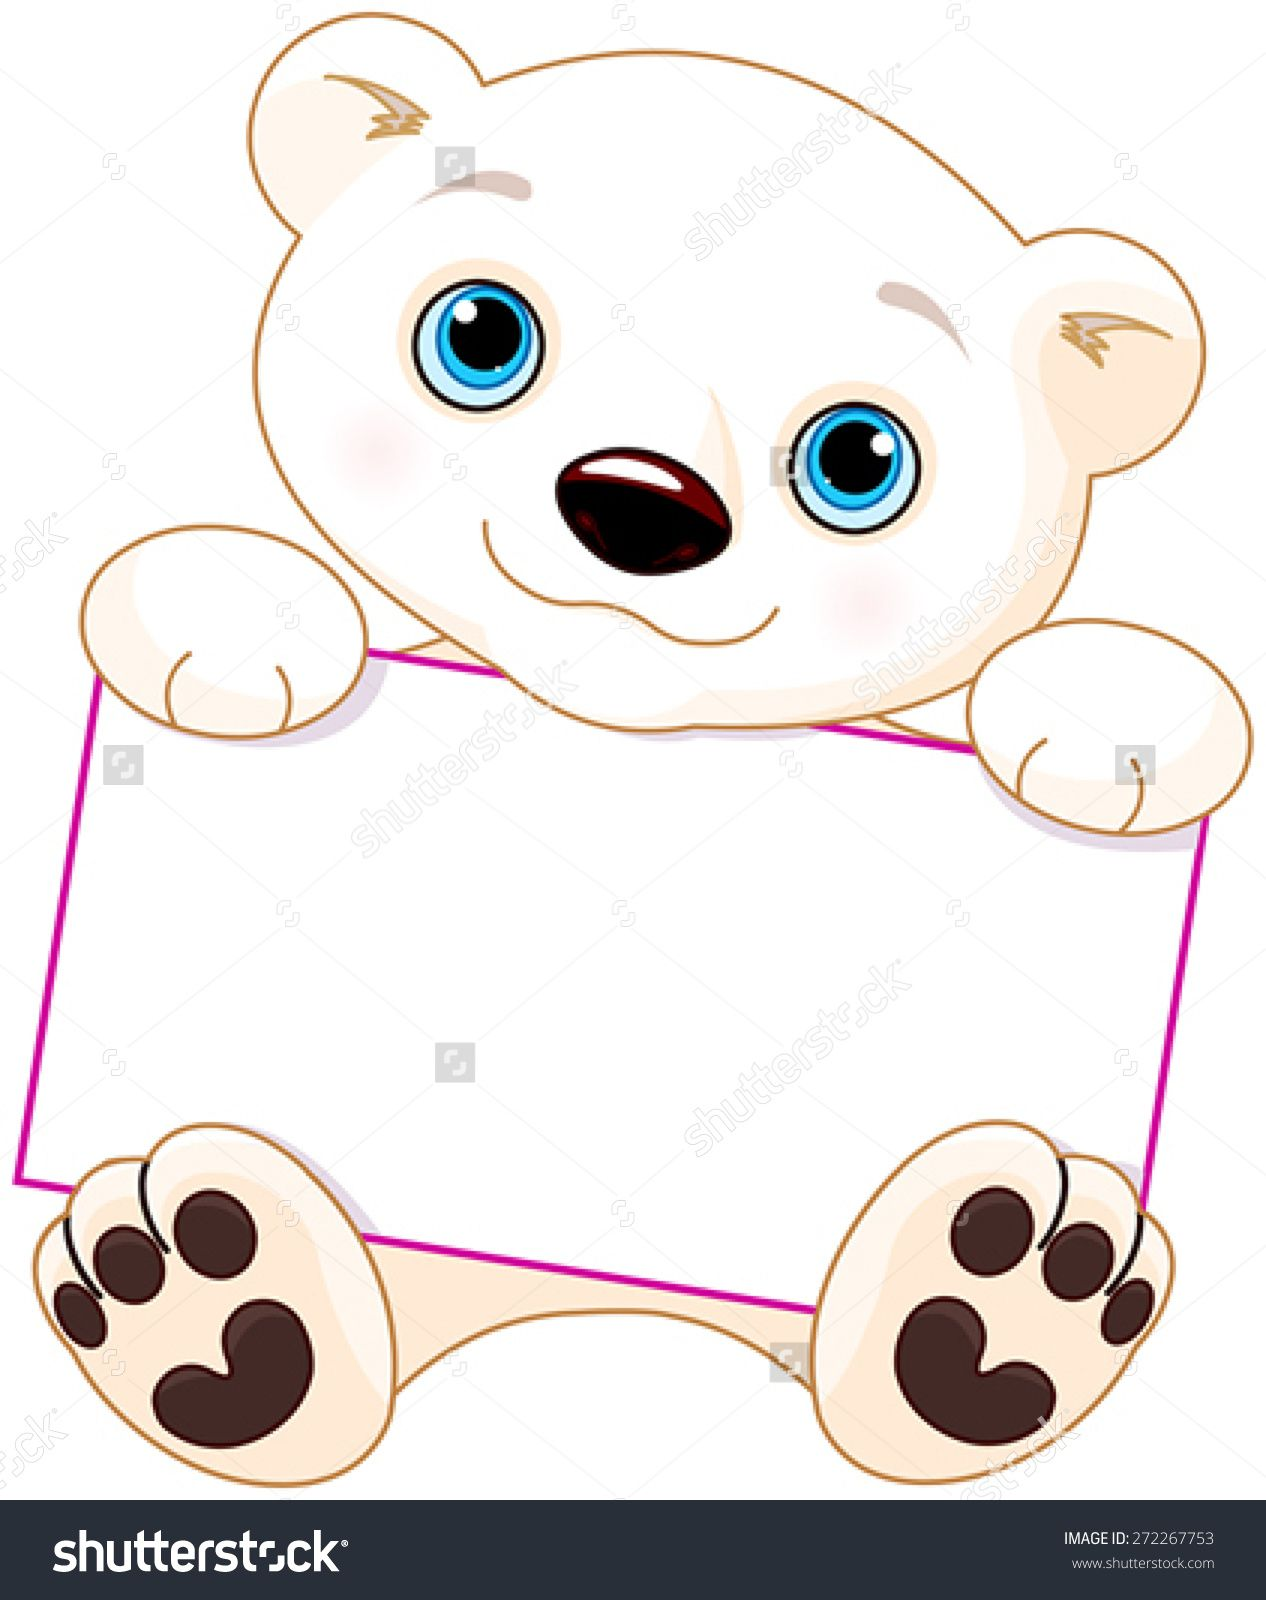 Bear and sign clipart graphic freeuse Cute Polar bear holds a sign | School | Cute polar bear, Bear signs ... graphic freeuse